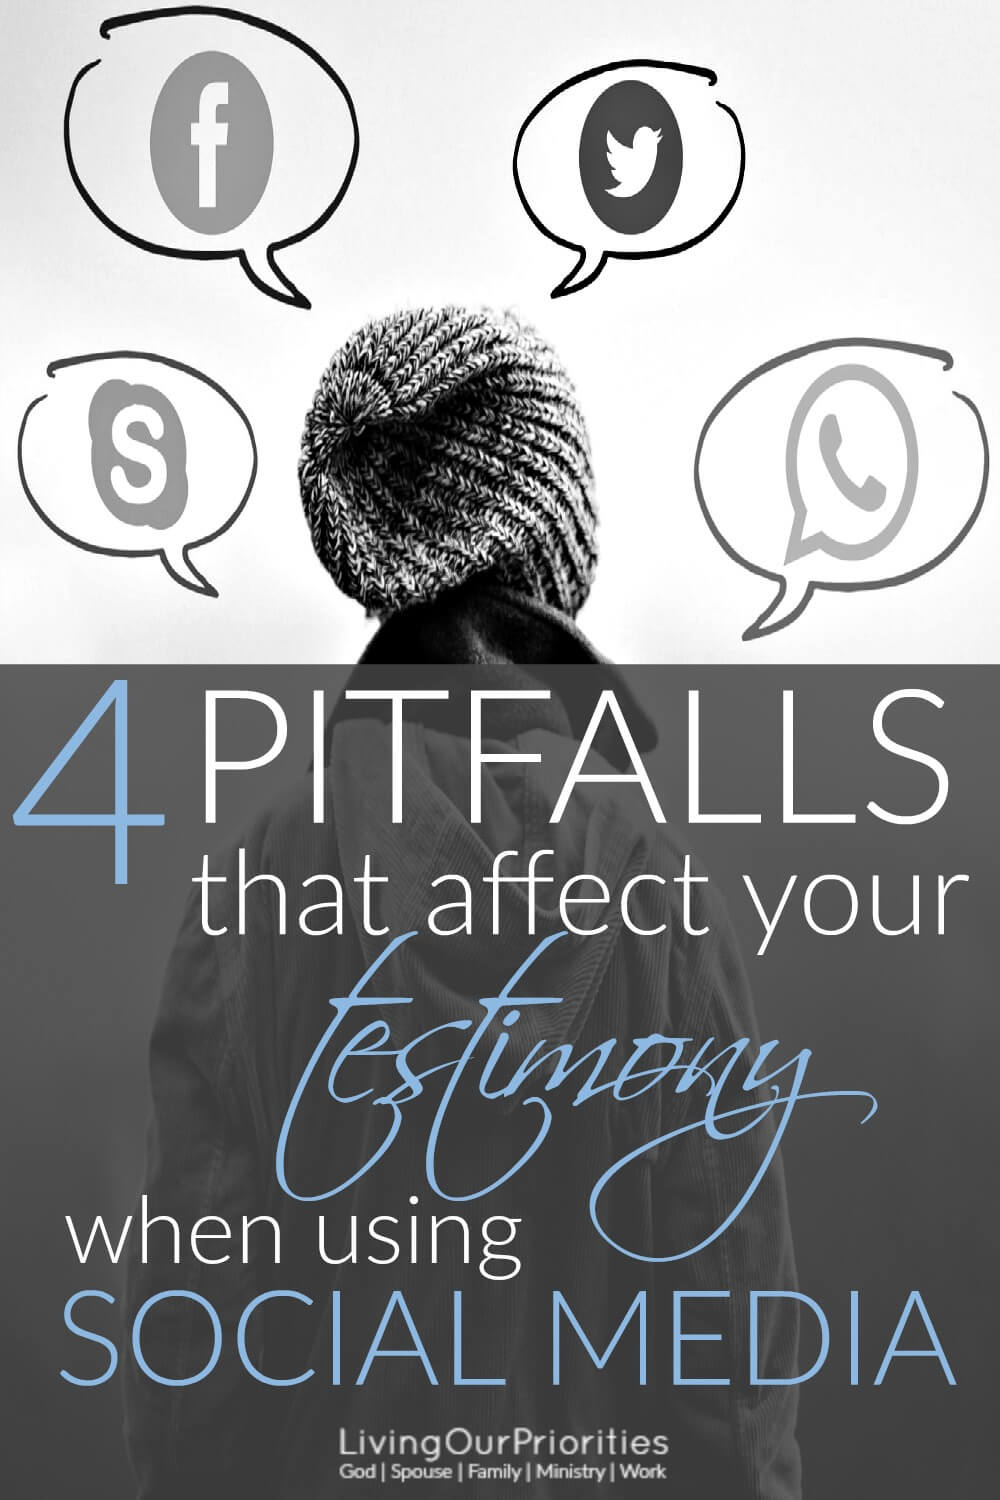 Do your posts, shared images, and comments, reflect your testimony when using social media? Read more to learn 4 pitfalls that affect your testimony on social media. #socialmedia #livingourpriorities #testimony